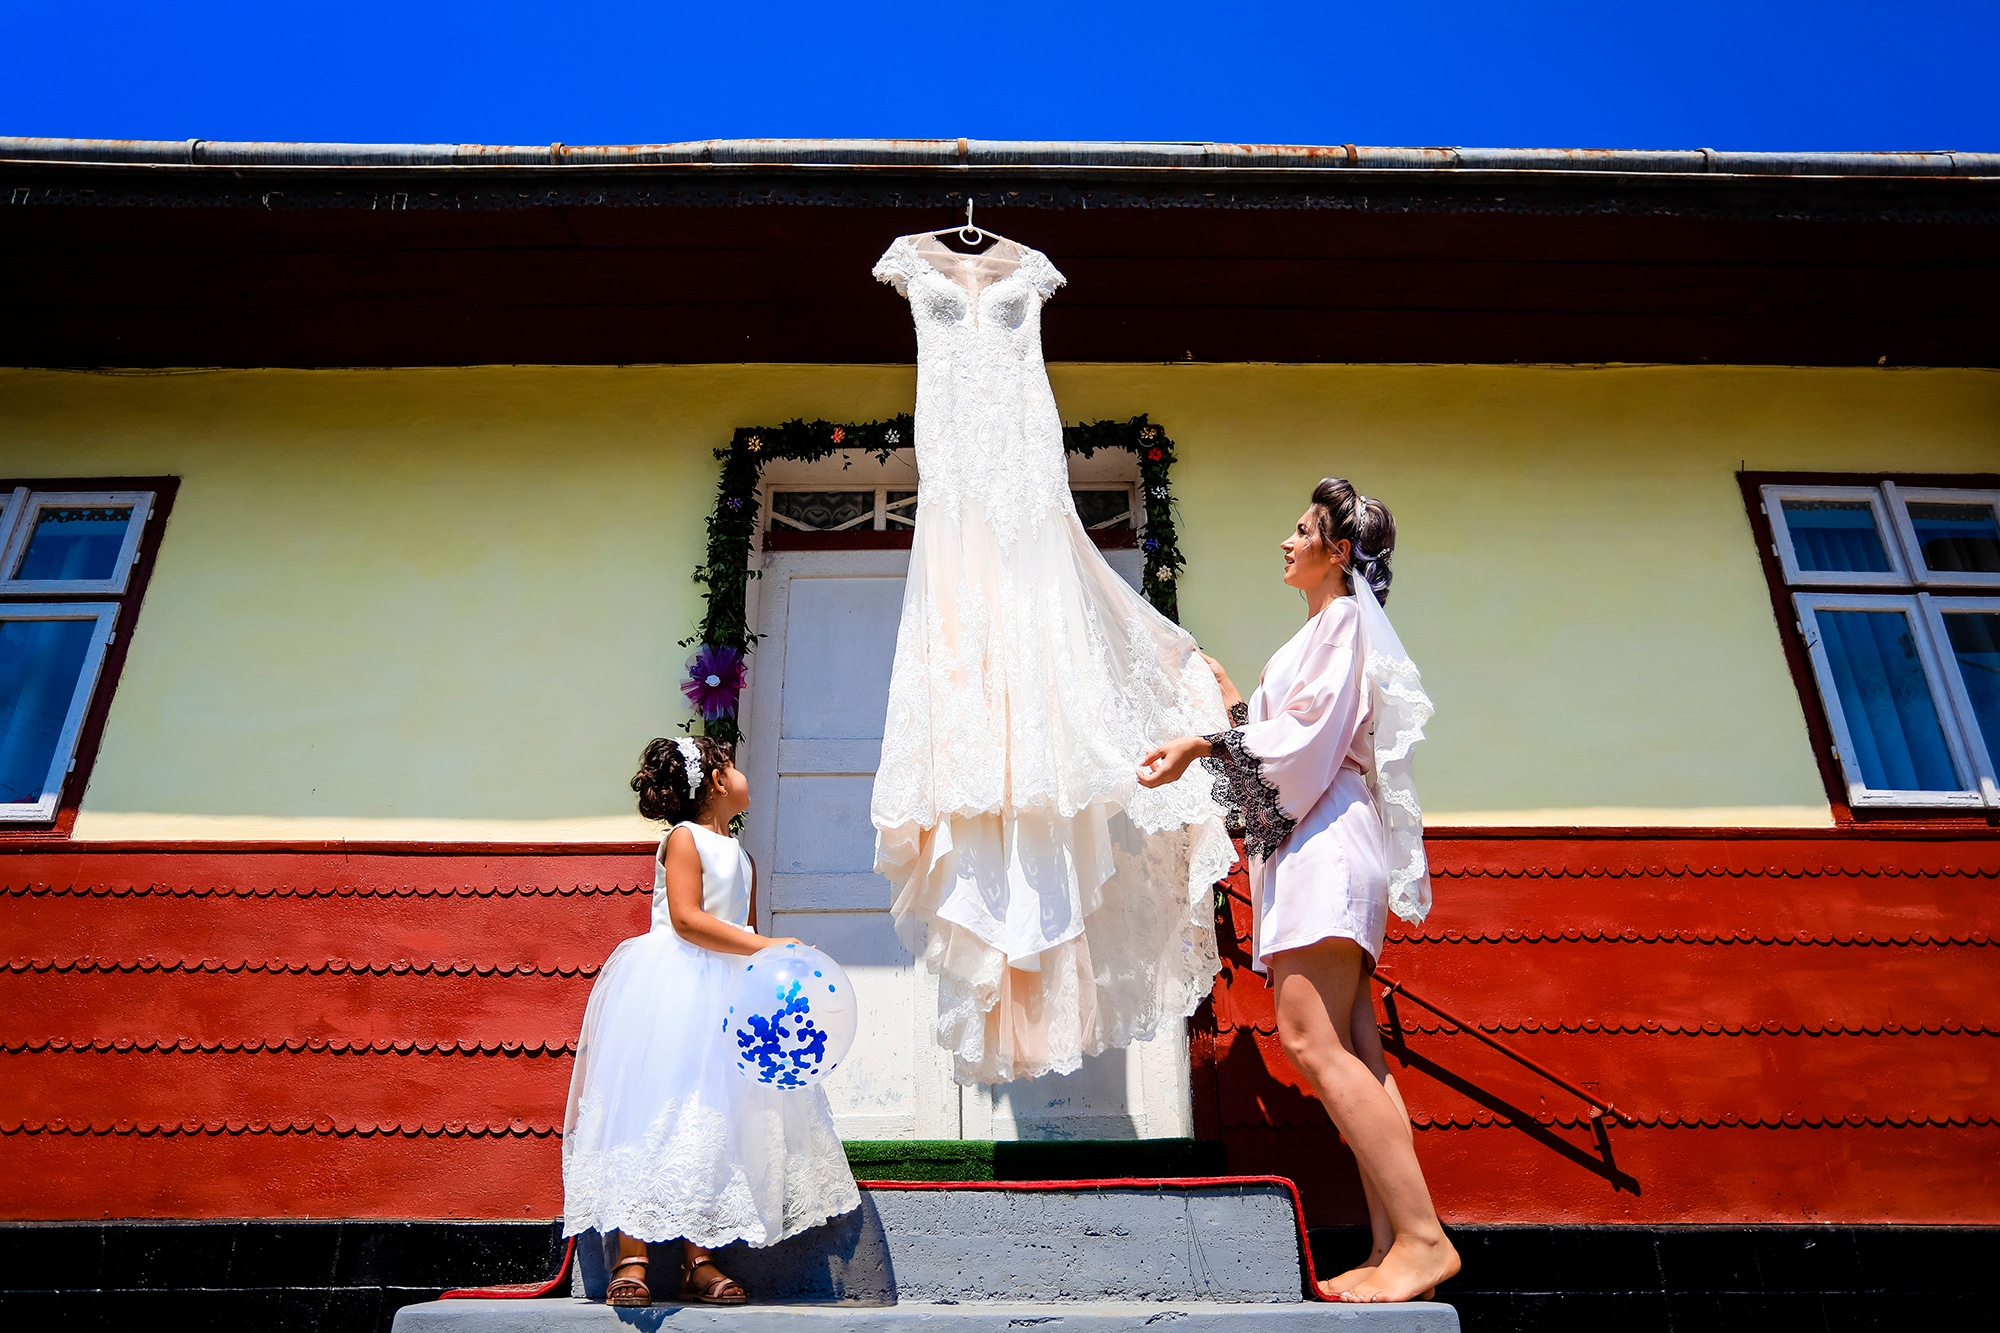 fotograf_nunta_suceava_romania_wedding_photographer_europe-(10)